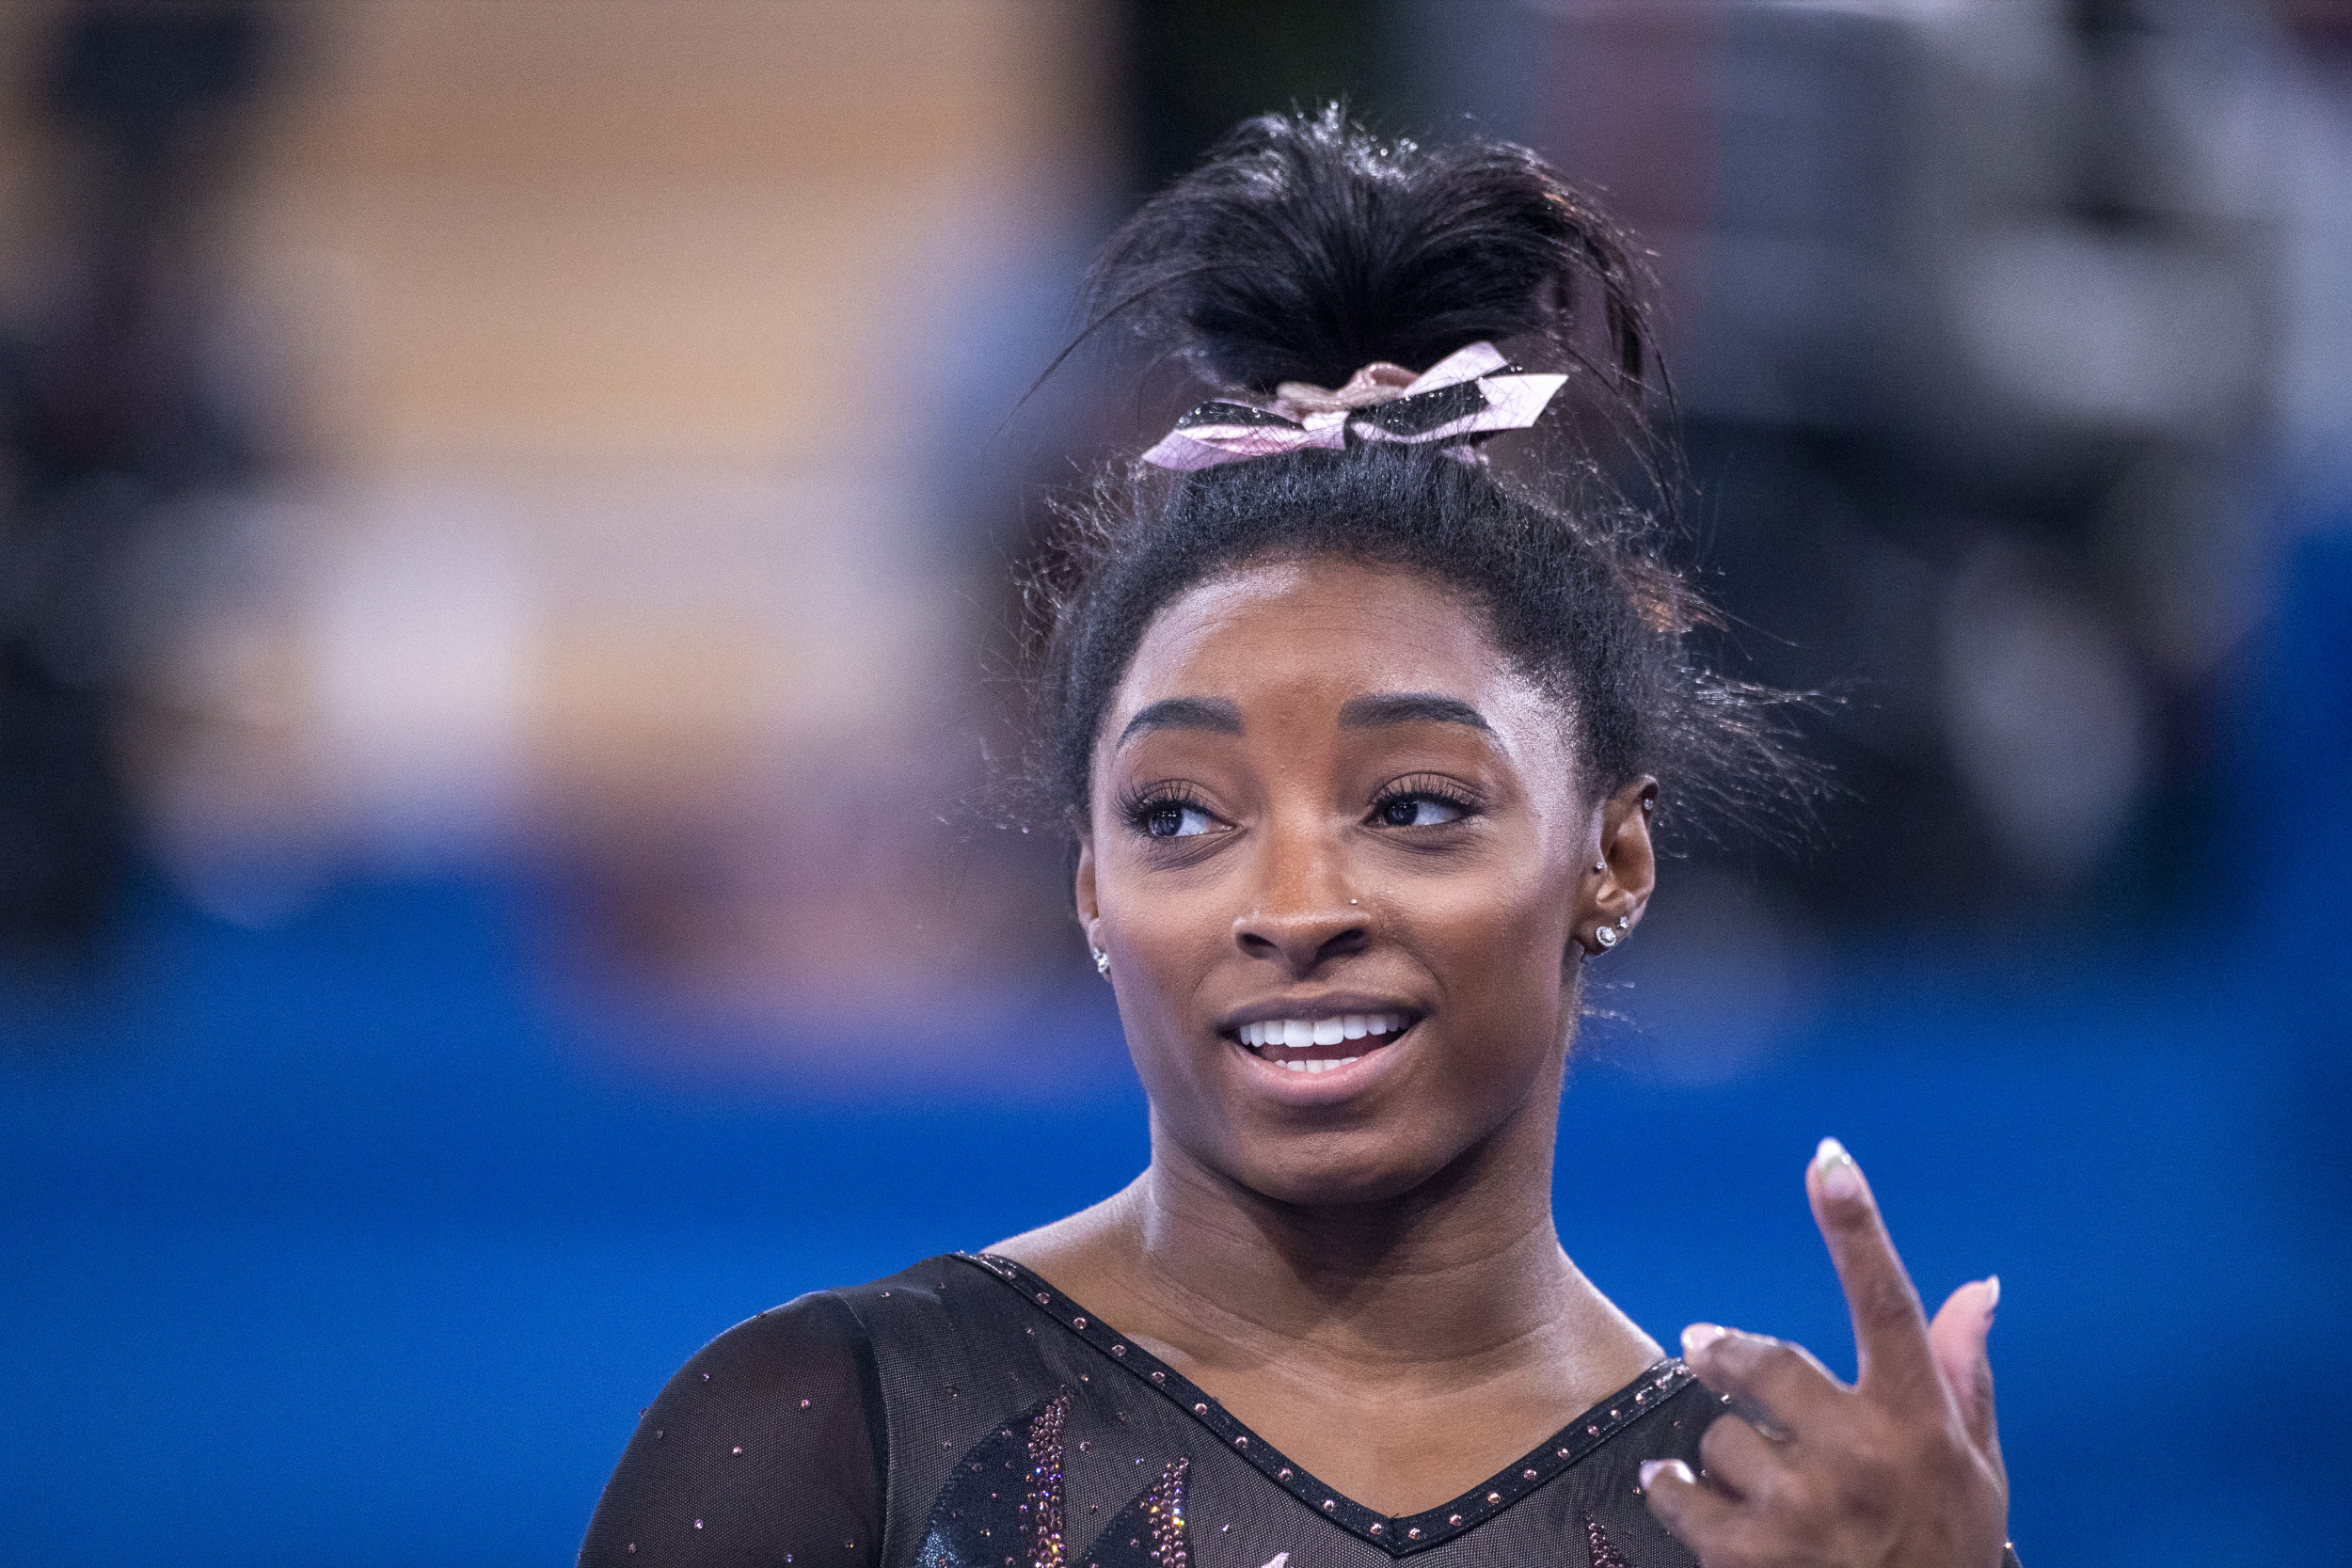 Simone Biles's Records and Sponsors Ahead of Tokyo 2020